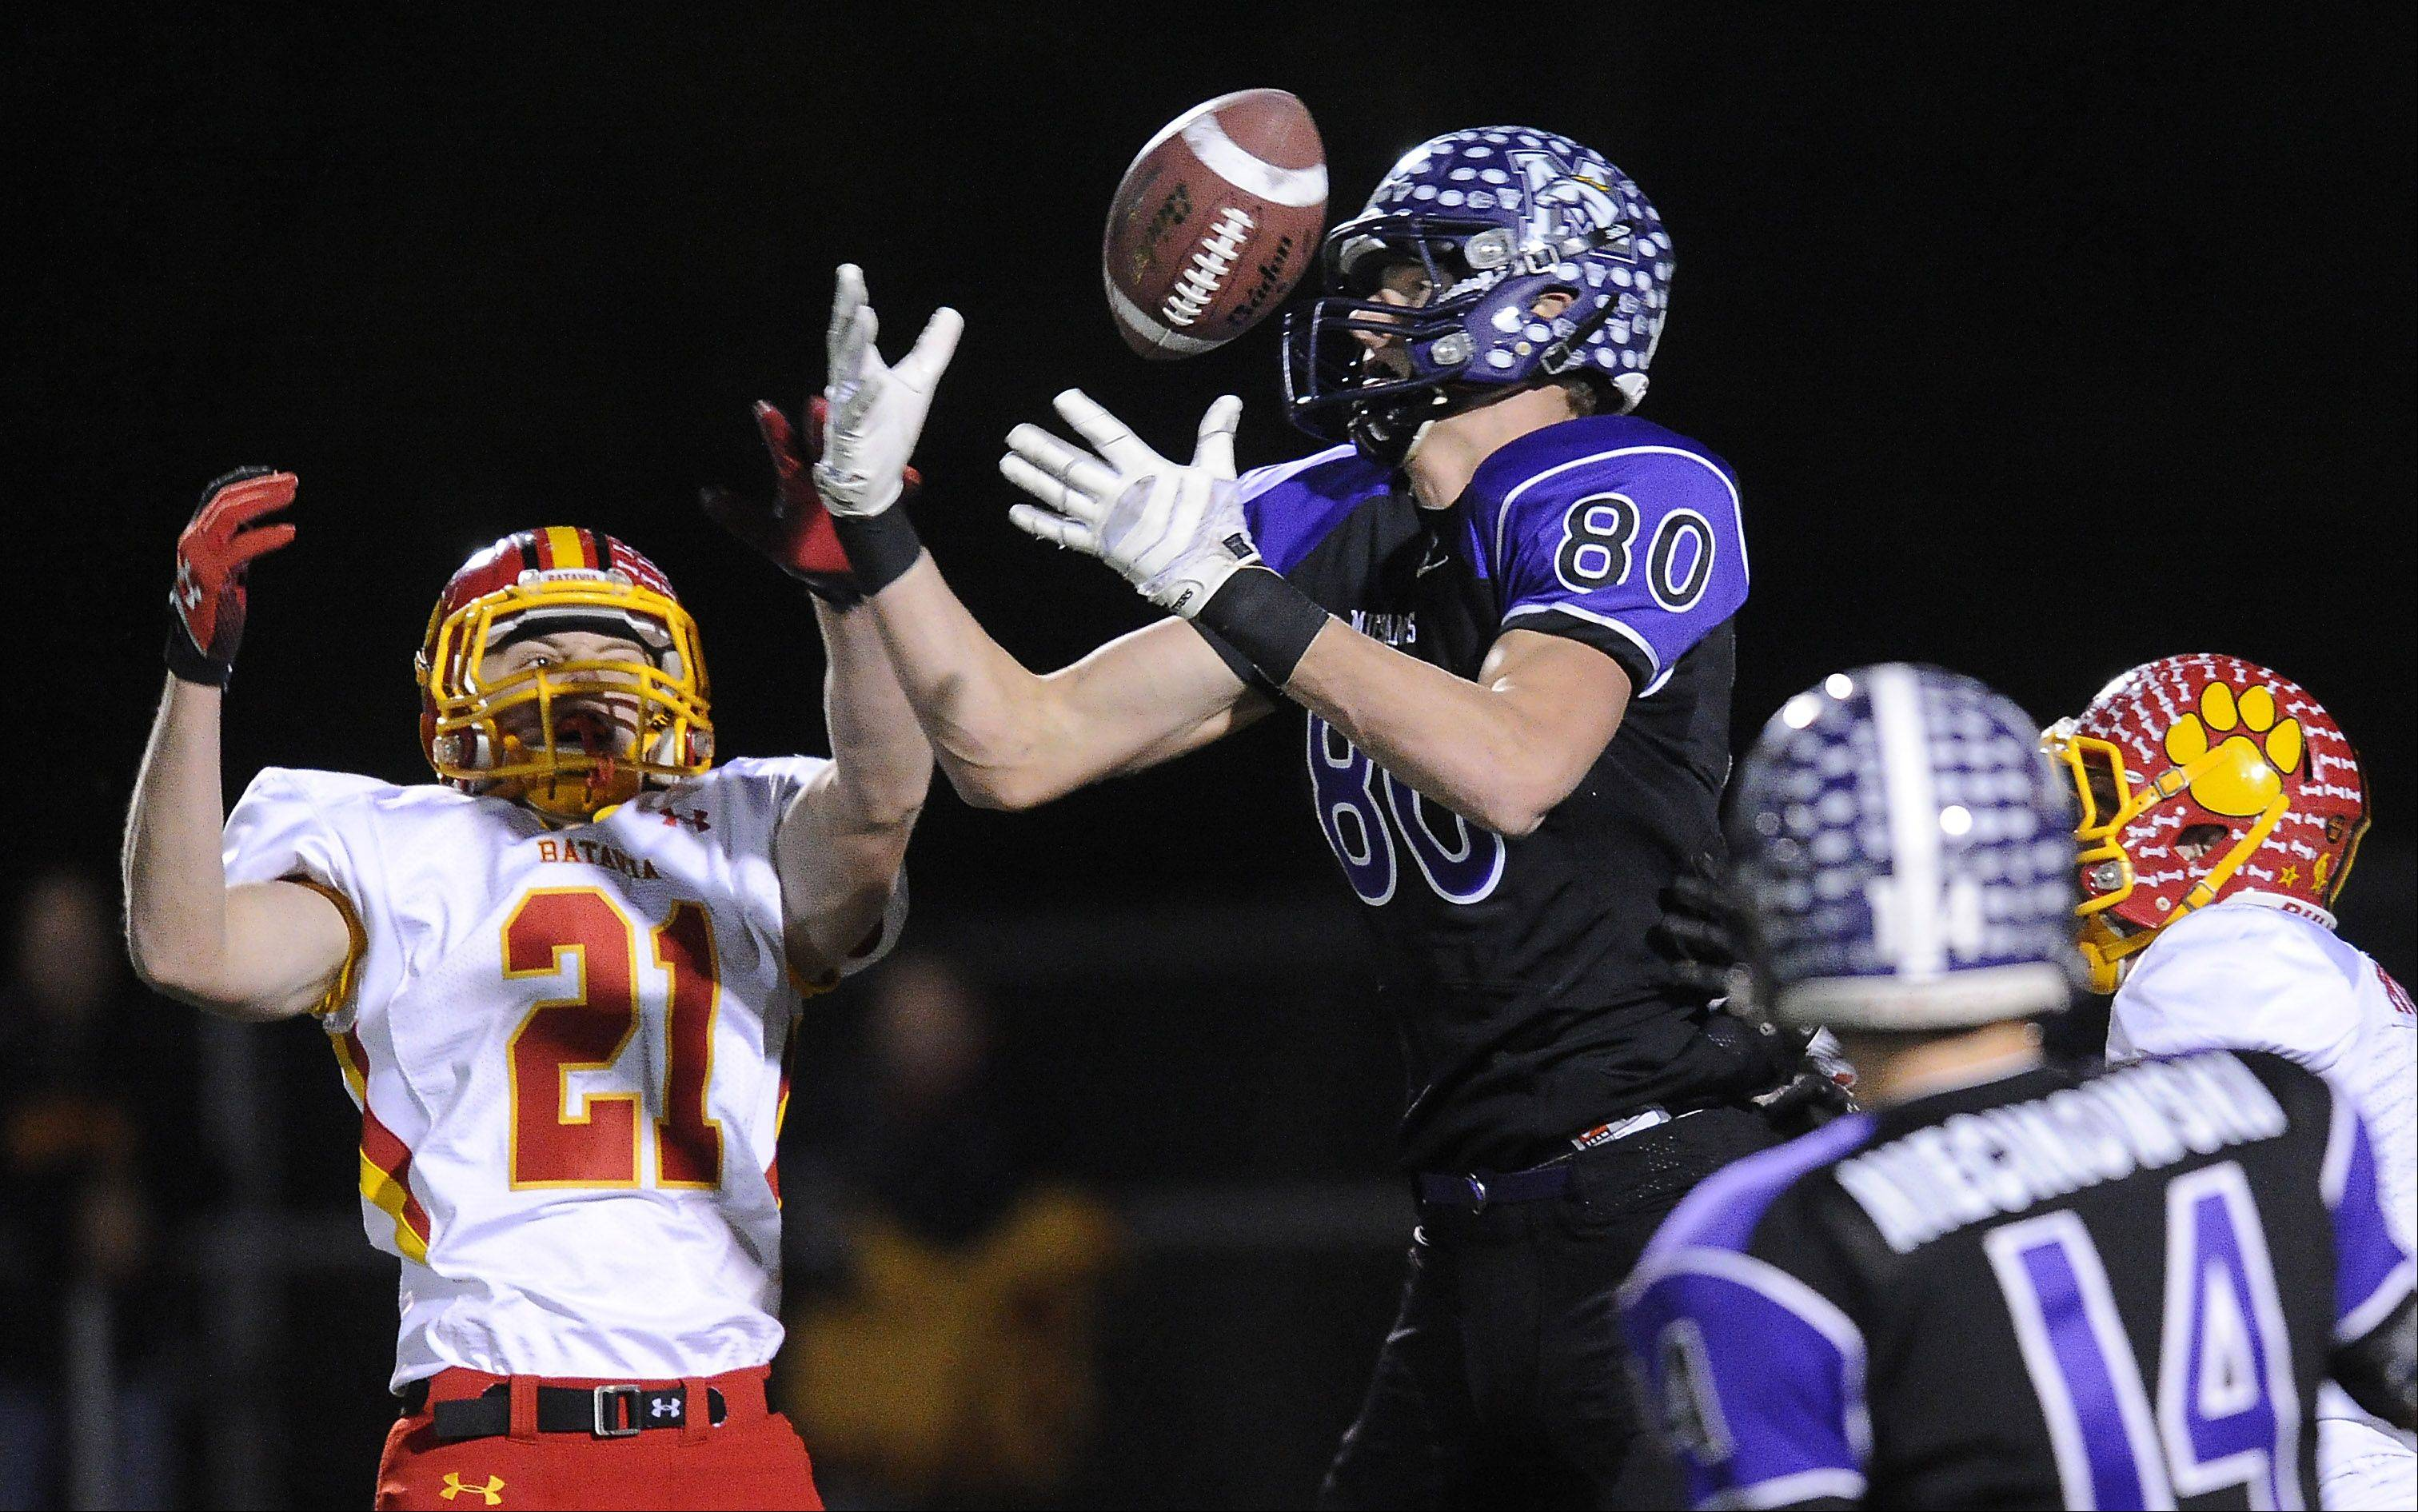 Mark Welsh/mwelsh@dailyherald.com Batavia's Nick Bernabei breaks up a pass intended for Rolling Meadows' Matt Dolan in the second quarter of the second-round game of the Class 6A playoffs at Rolling Meadows High School on Saturday.